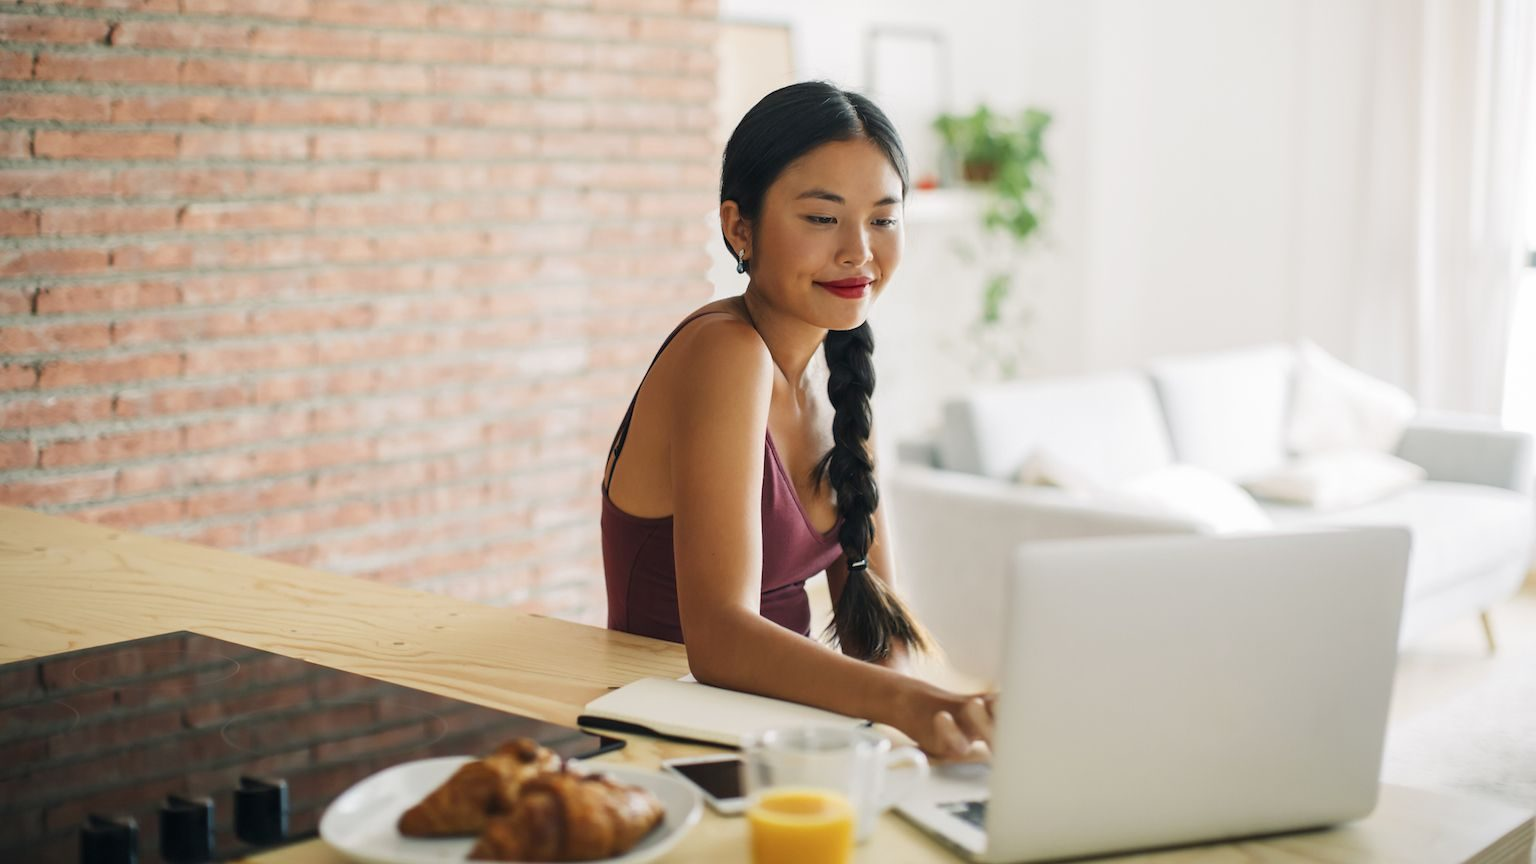 A young woman using her laptop and eating breakfast at home